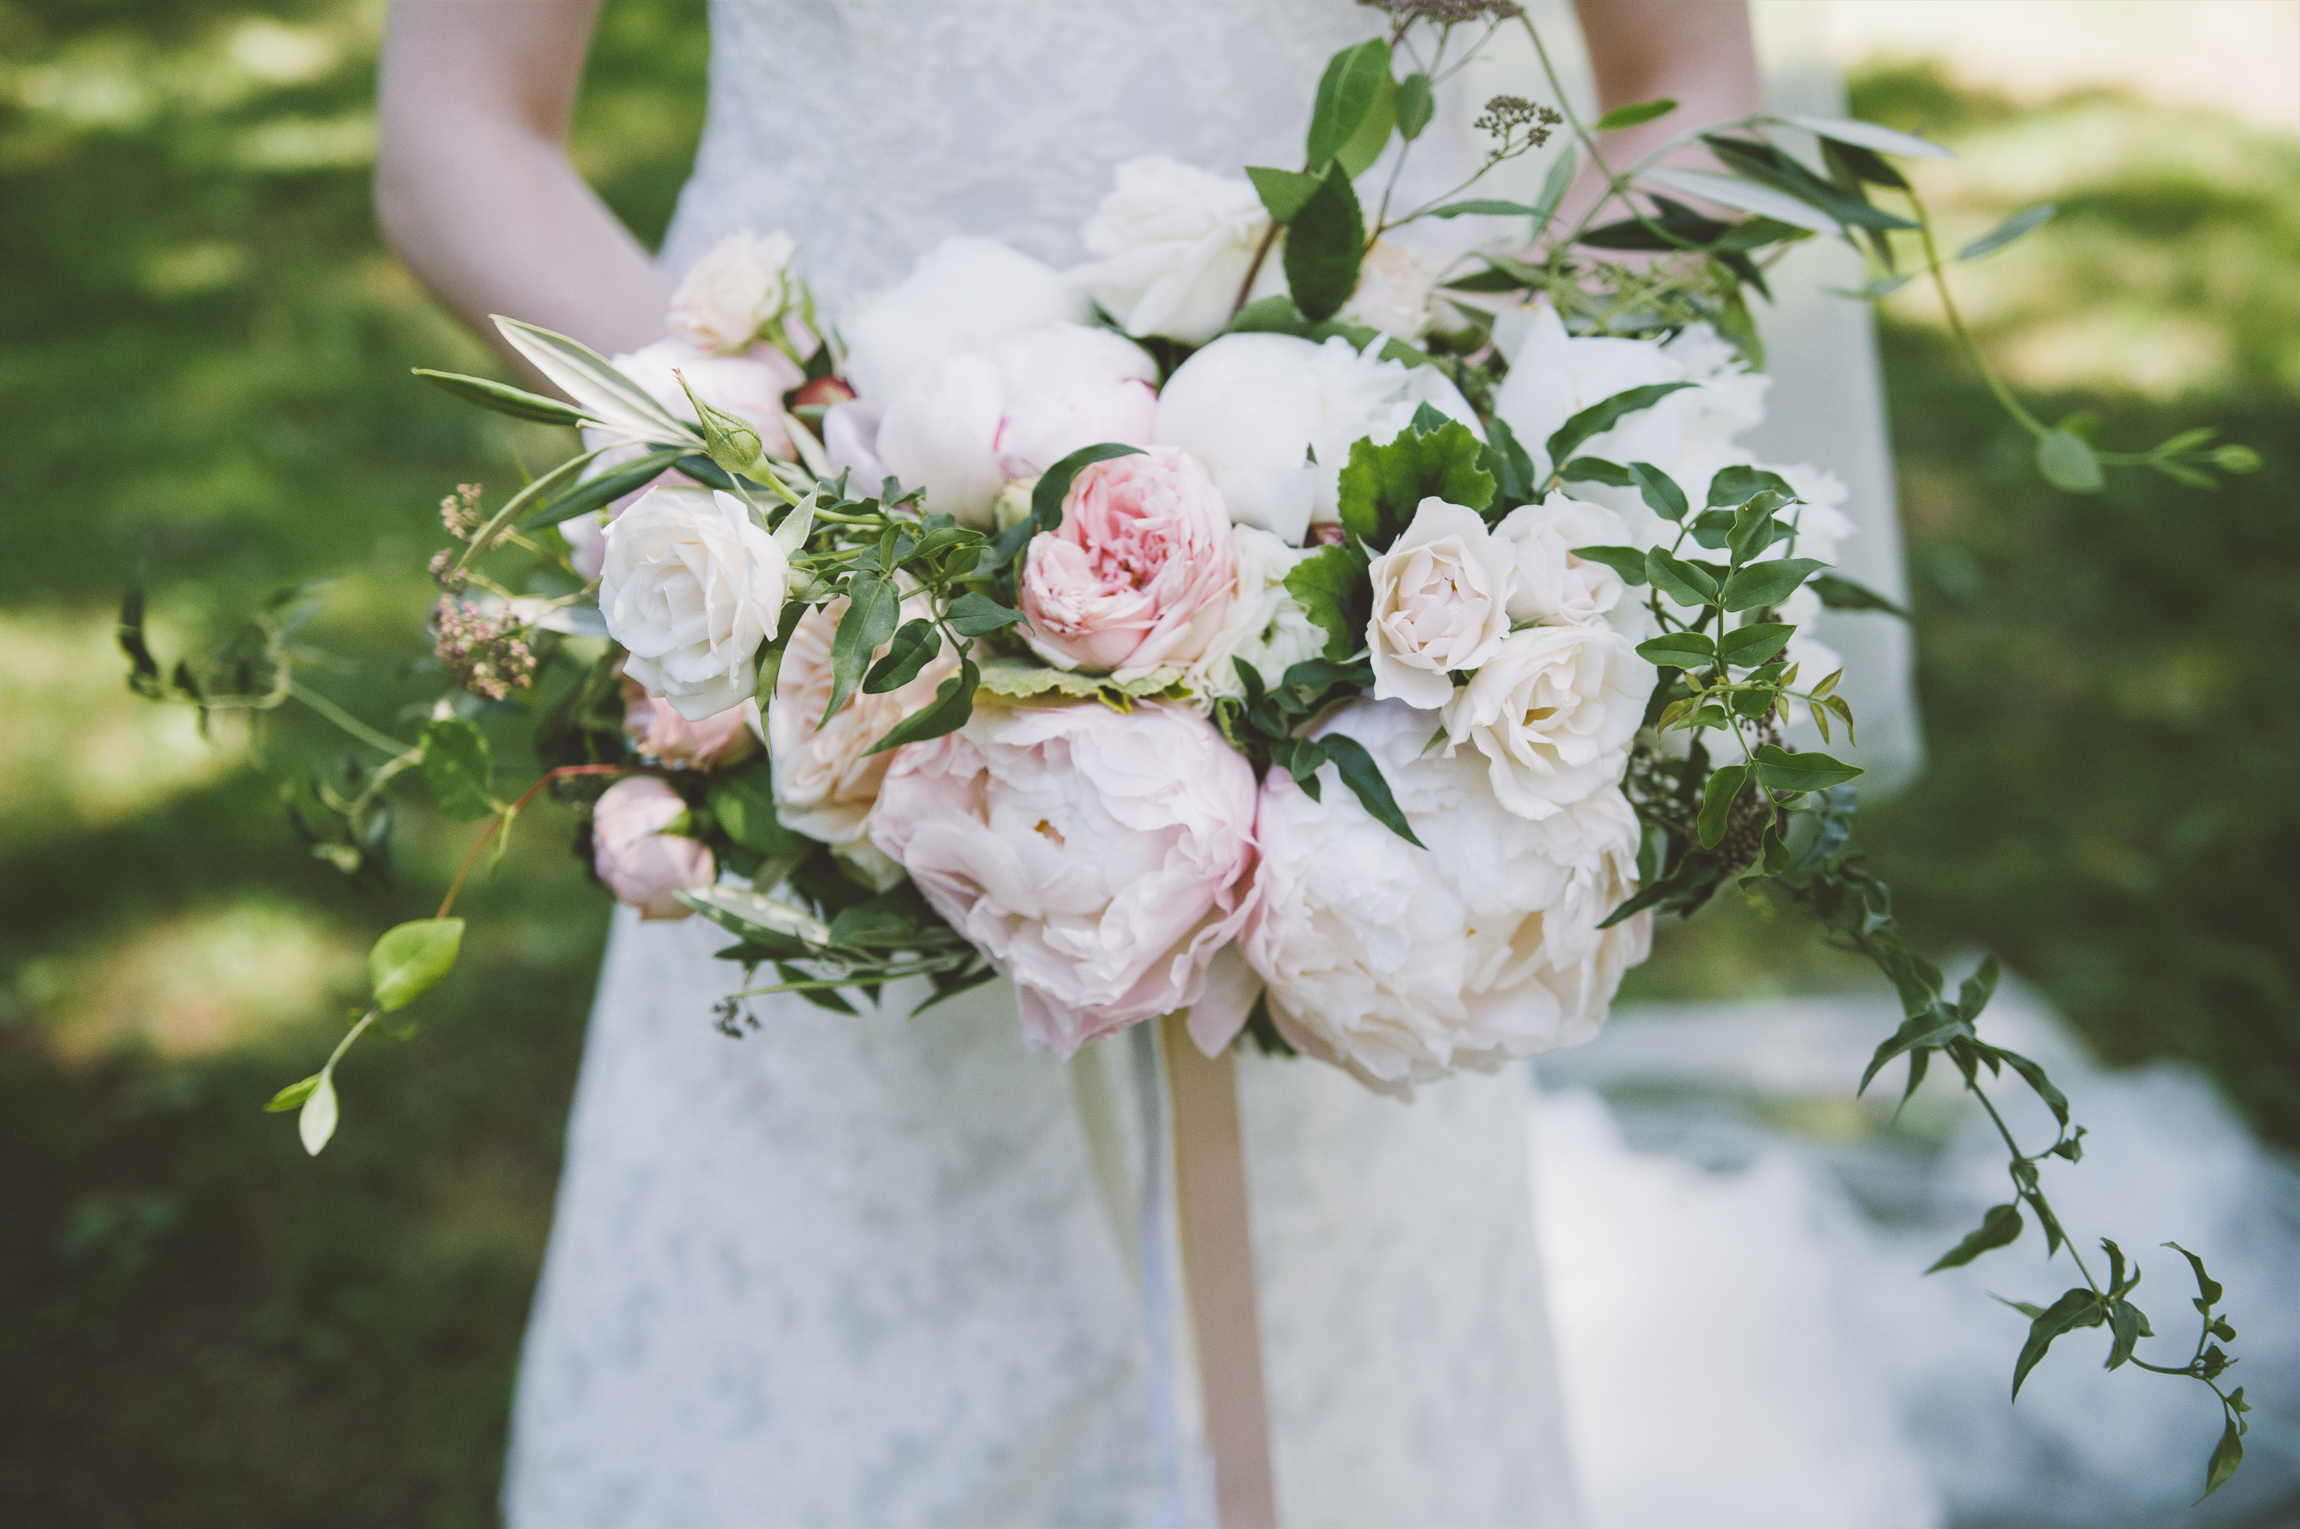 amanda cowley events niagara wedding planner kurtz orchard bride gown peonies blush greenery ivory